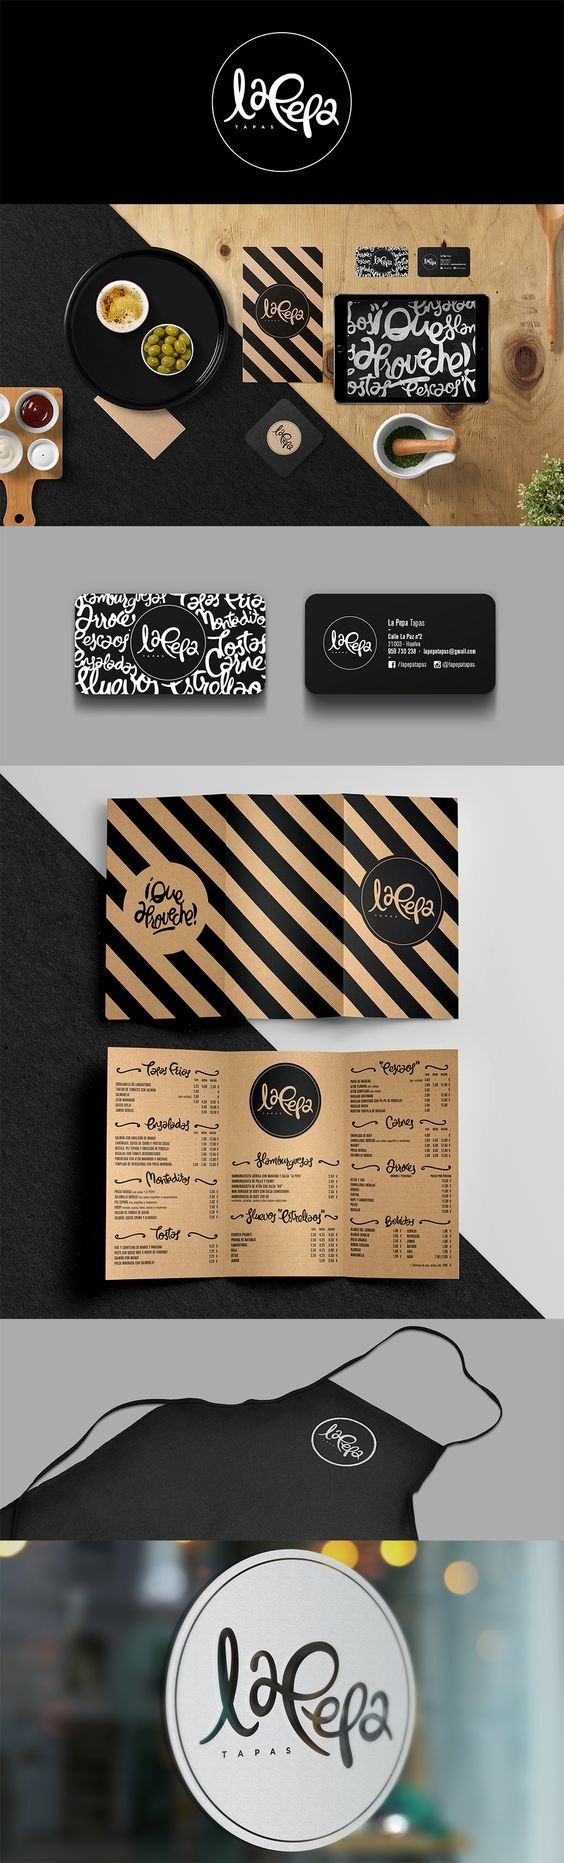 La Pepa Tapas Restaurant Branding on Behance by Chio Romero | Fivestar Branding – Design and Branding Agency & Inspiration Gallery